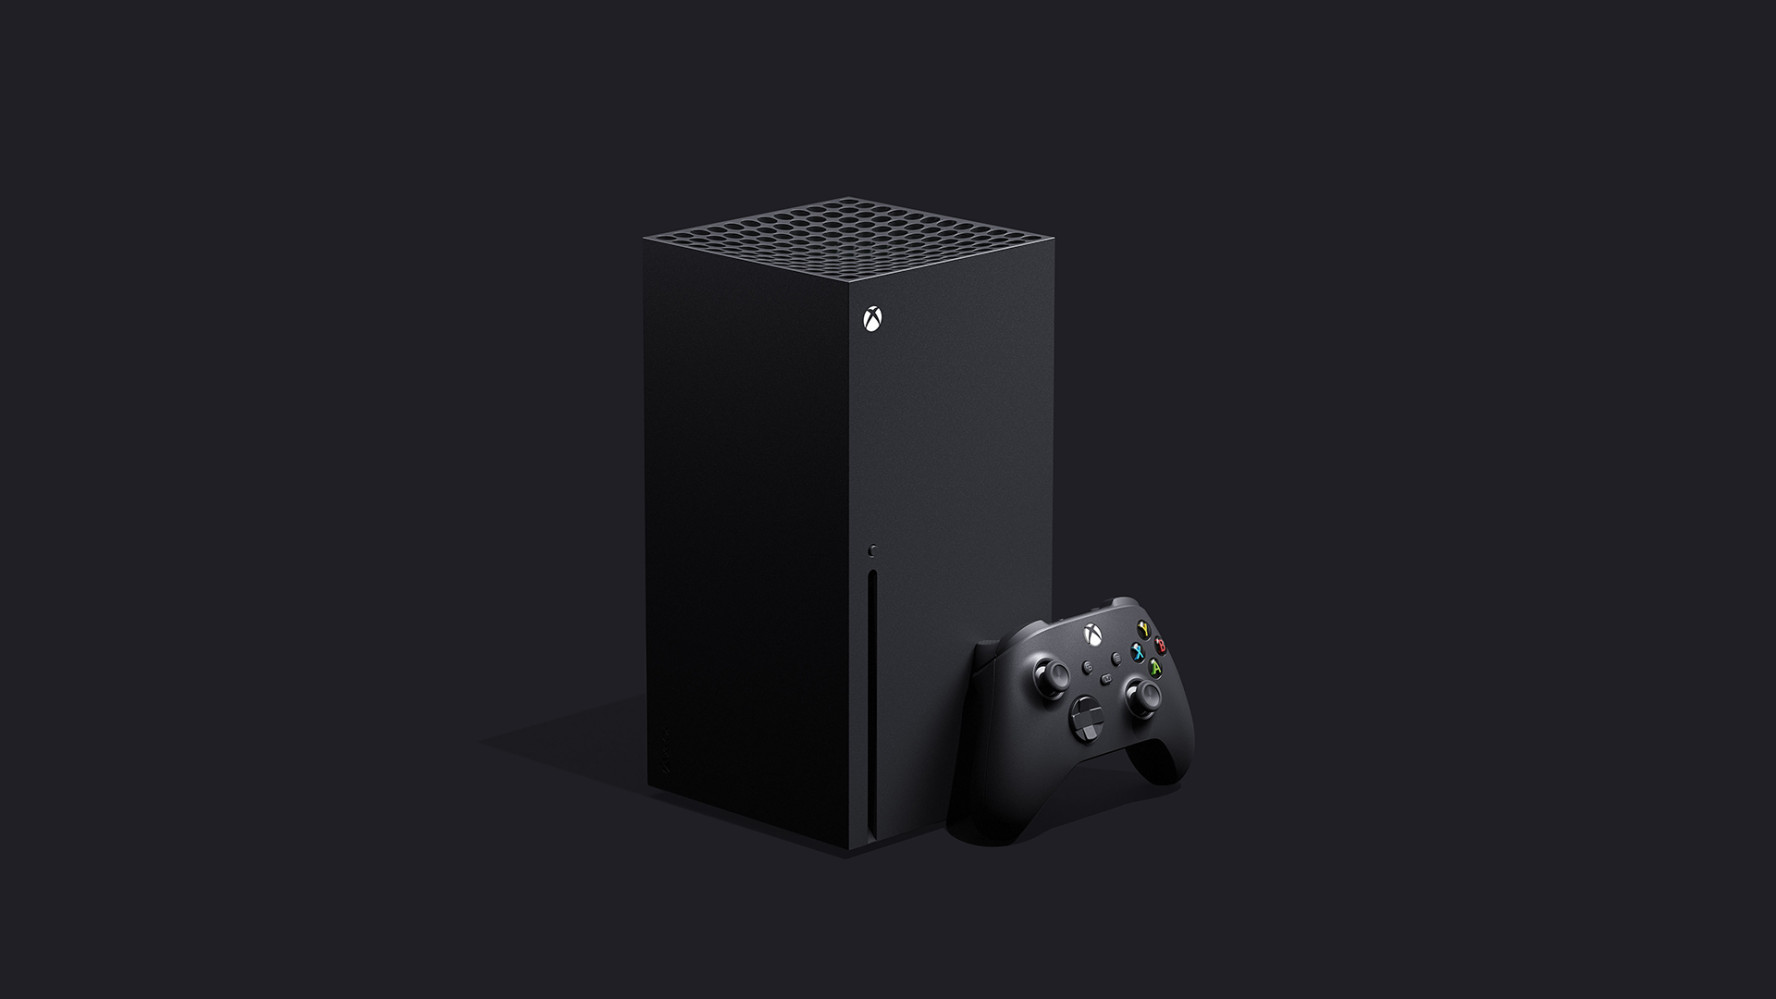 Phil Spencer shares more details on what to expect from the Xbox Series X